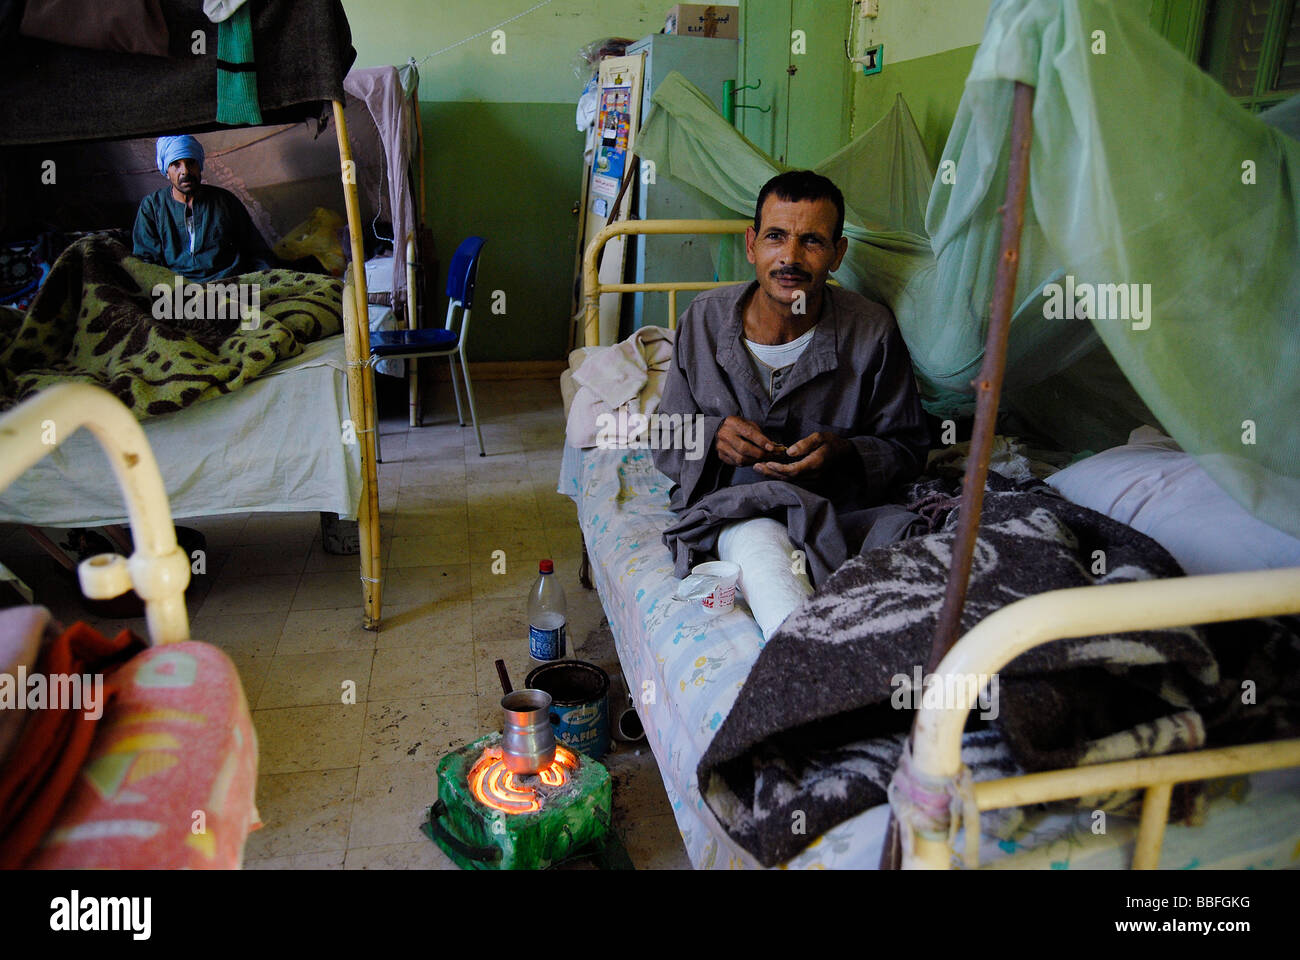 Two man suffering from leprosy are staying at the hospital of Egypt's leprosy colony. - Stock Image